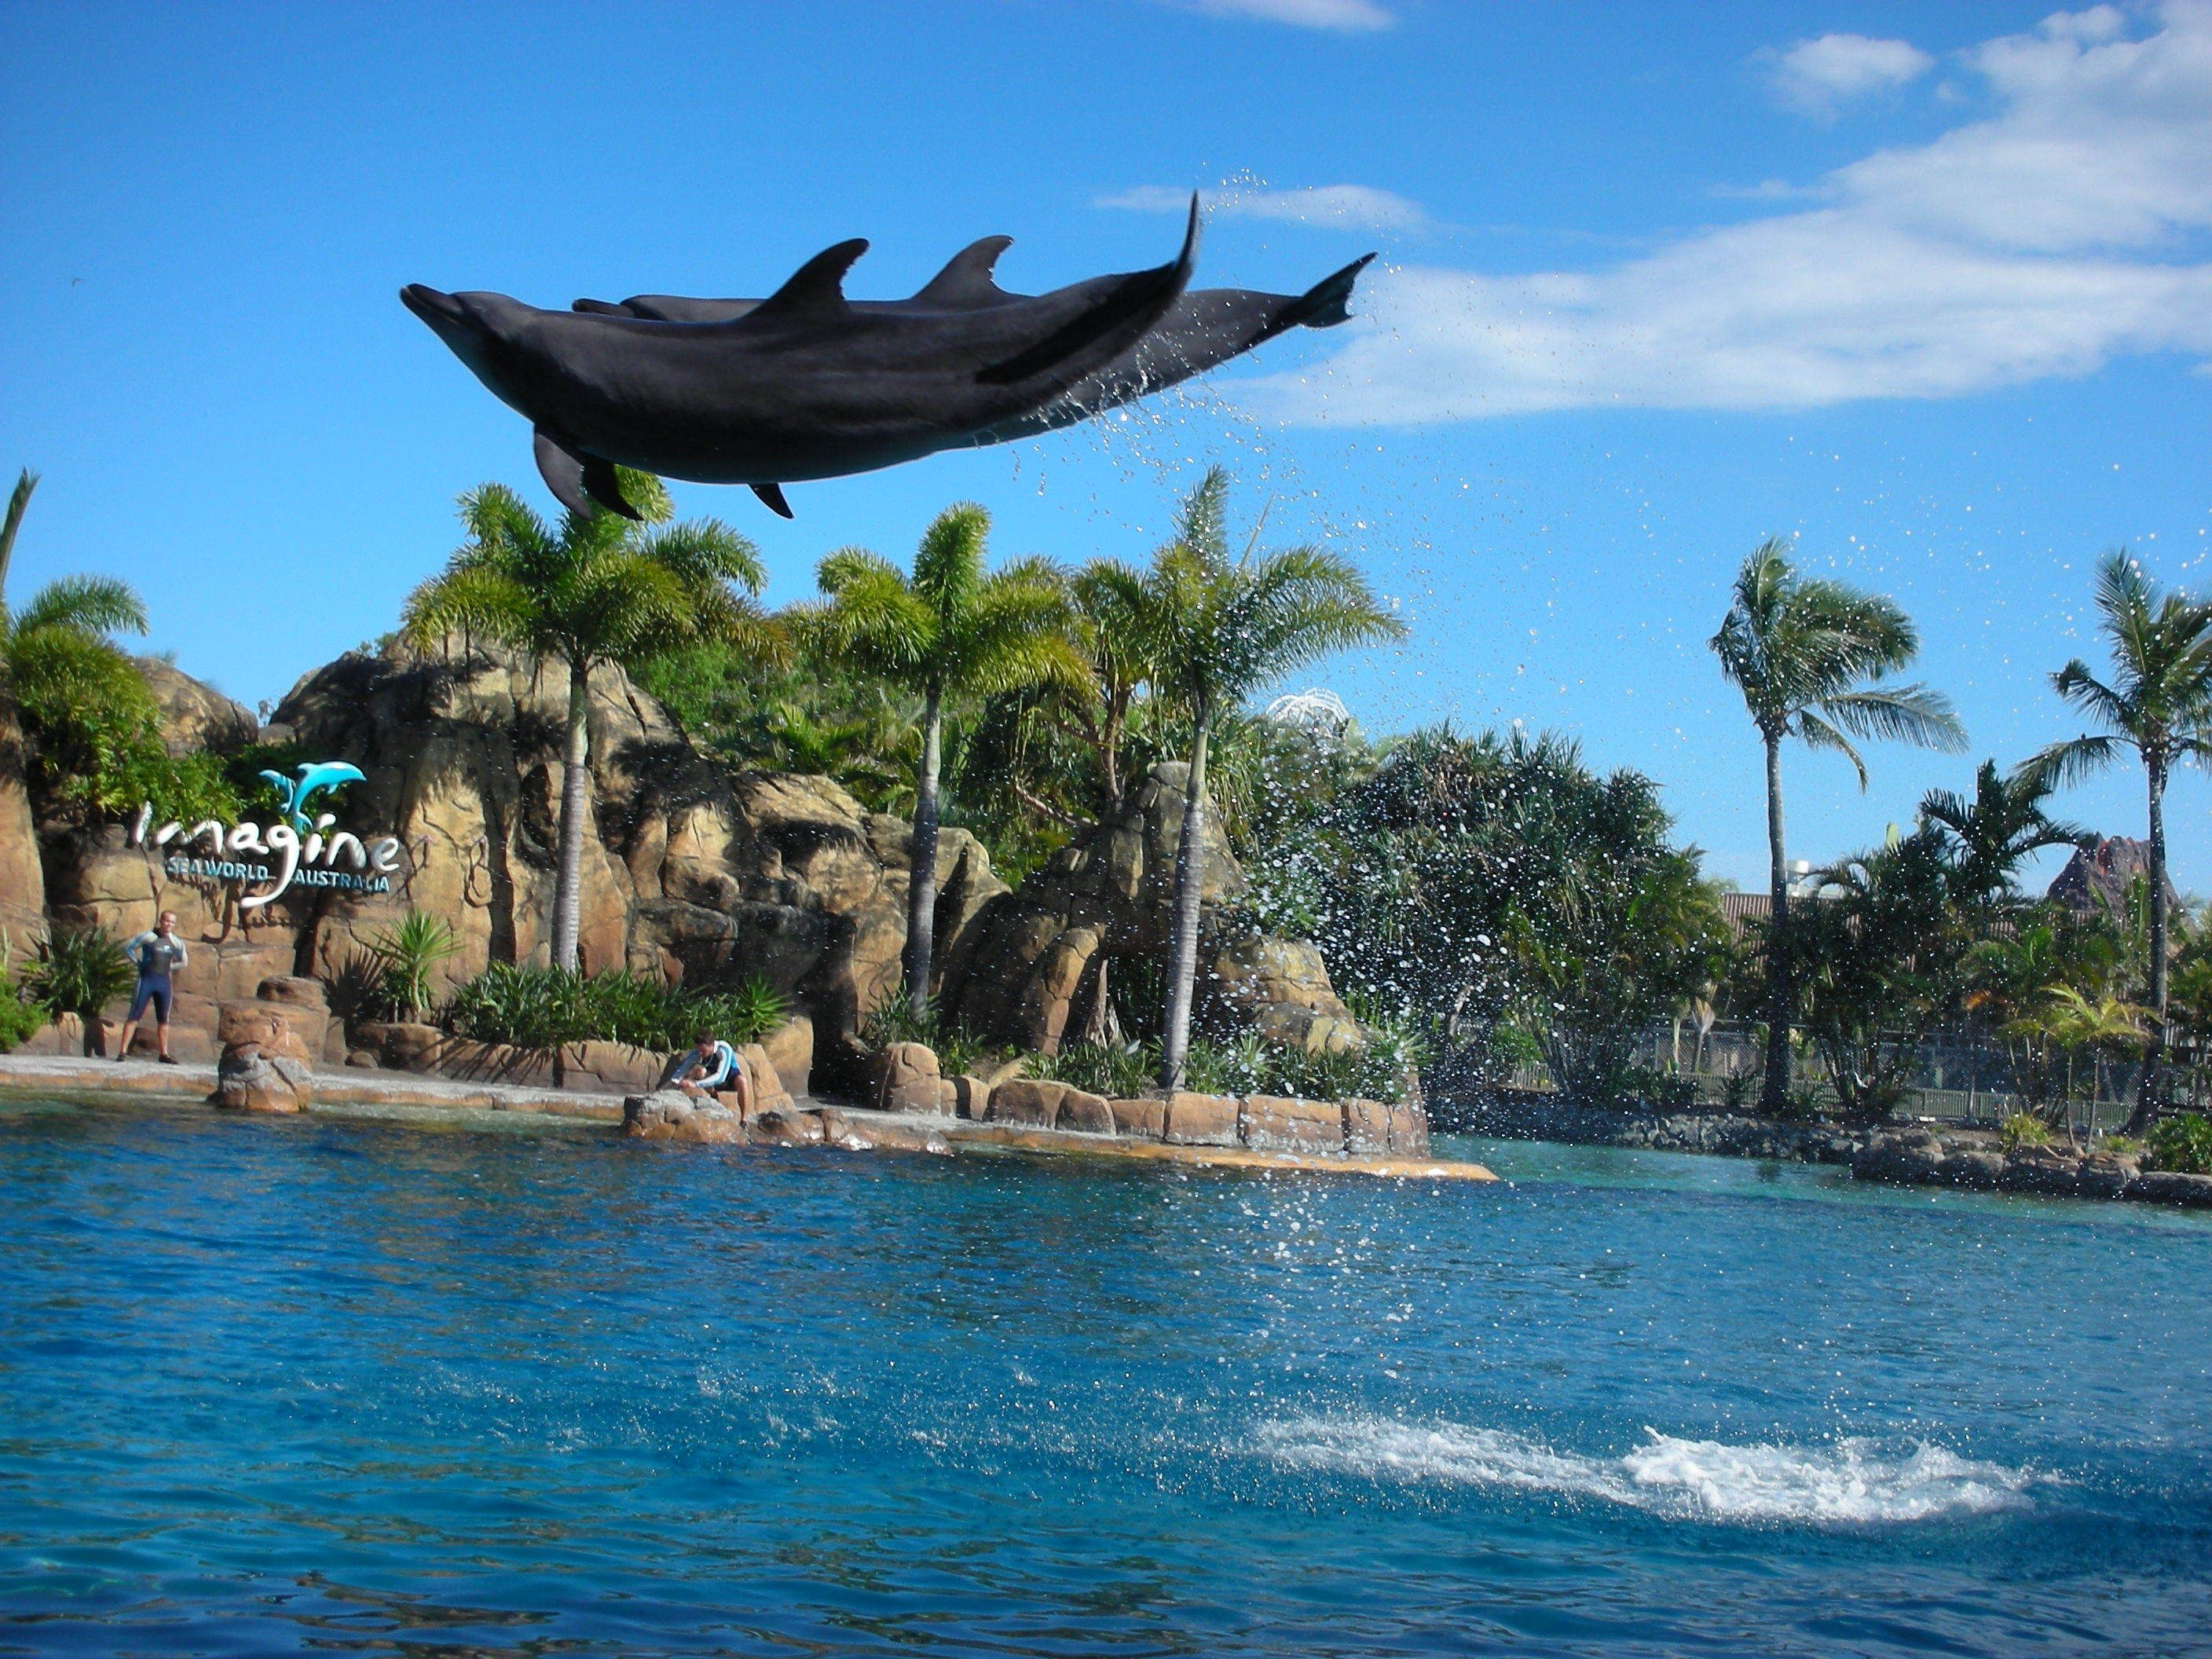 See the dolphins play at SeaWorld in Gold Coast Australia http